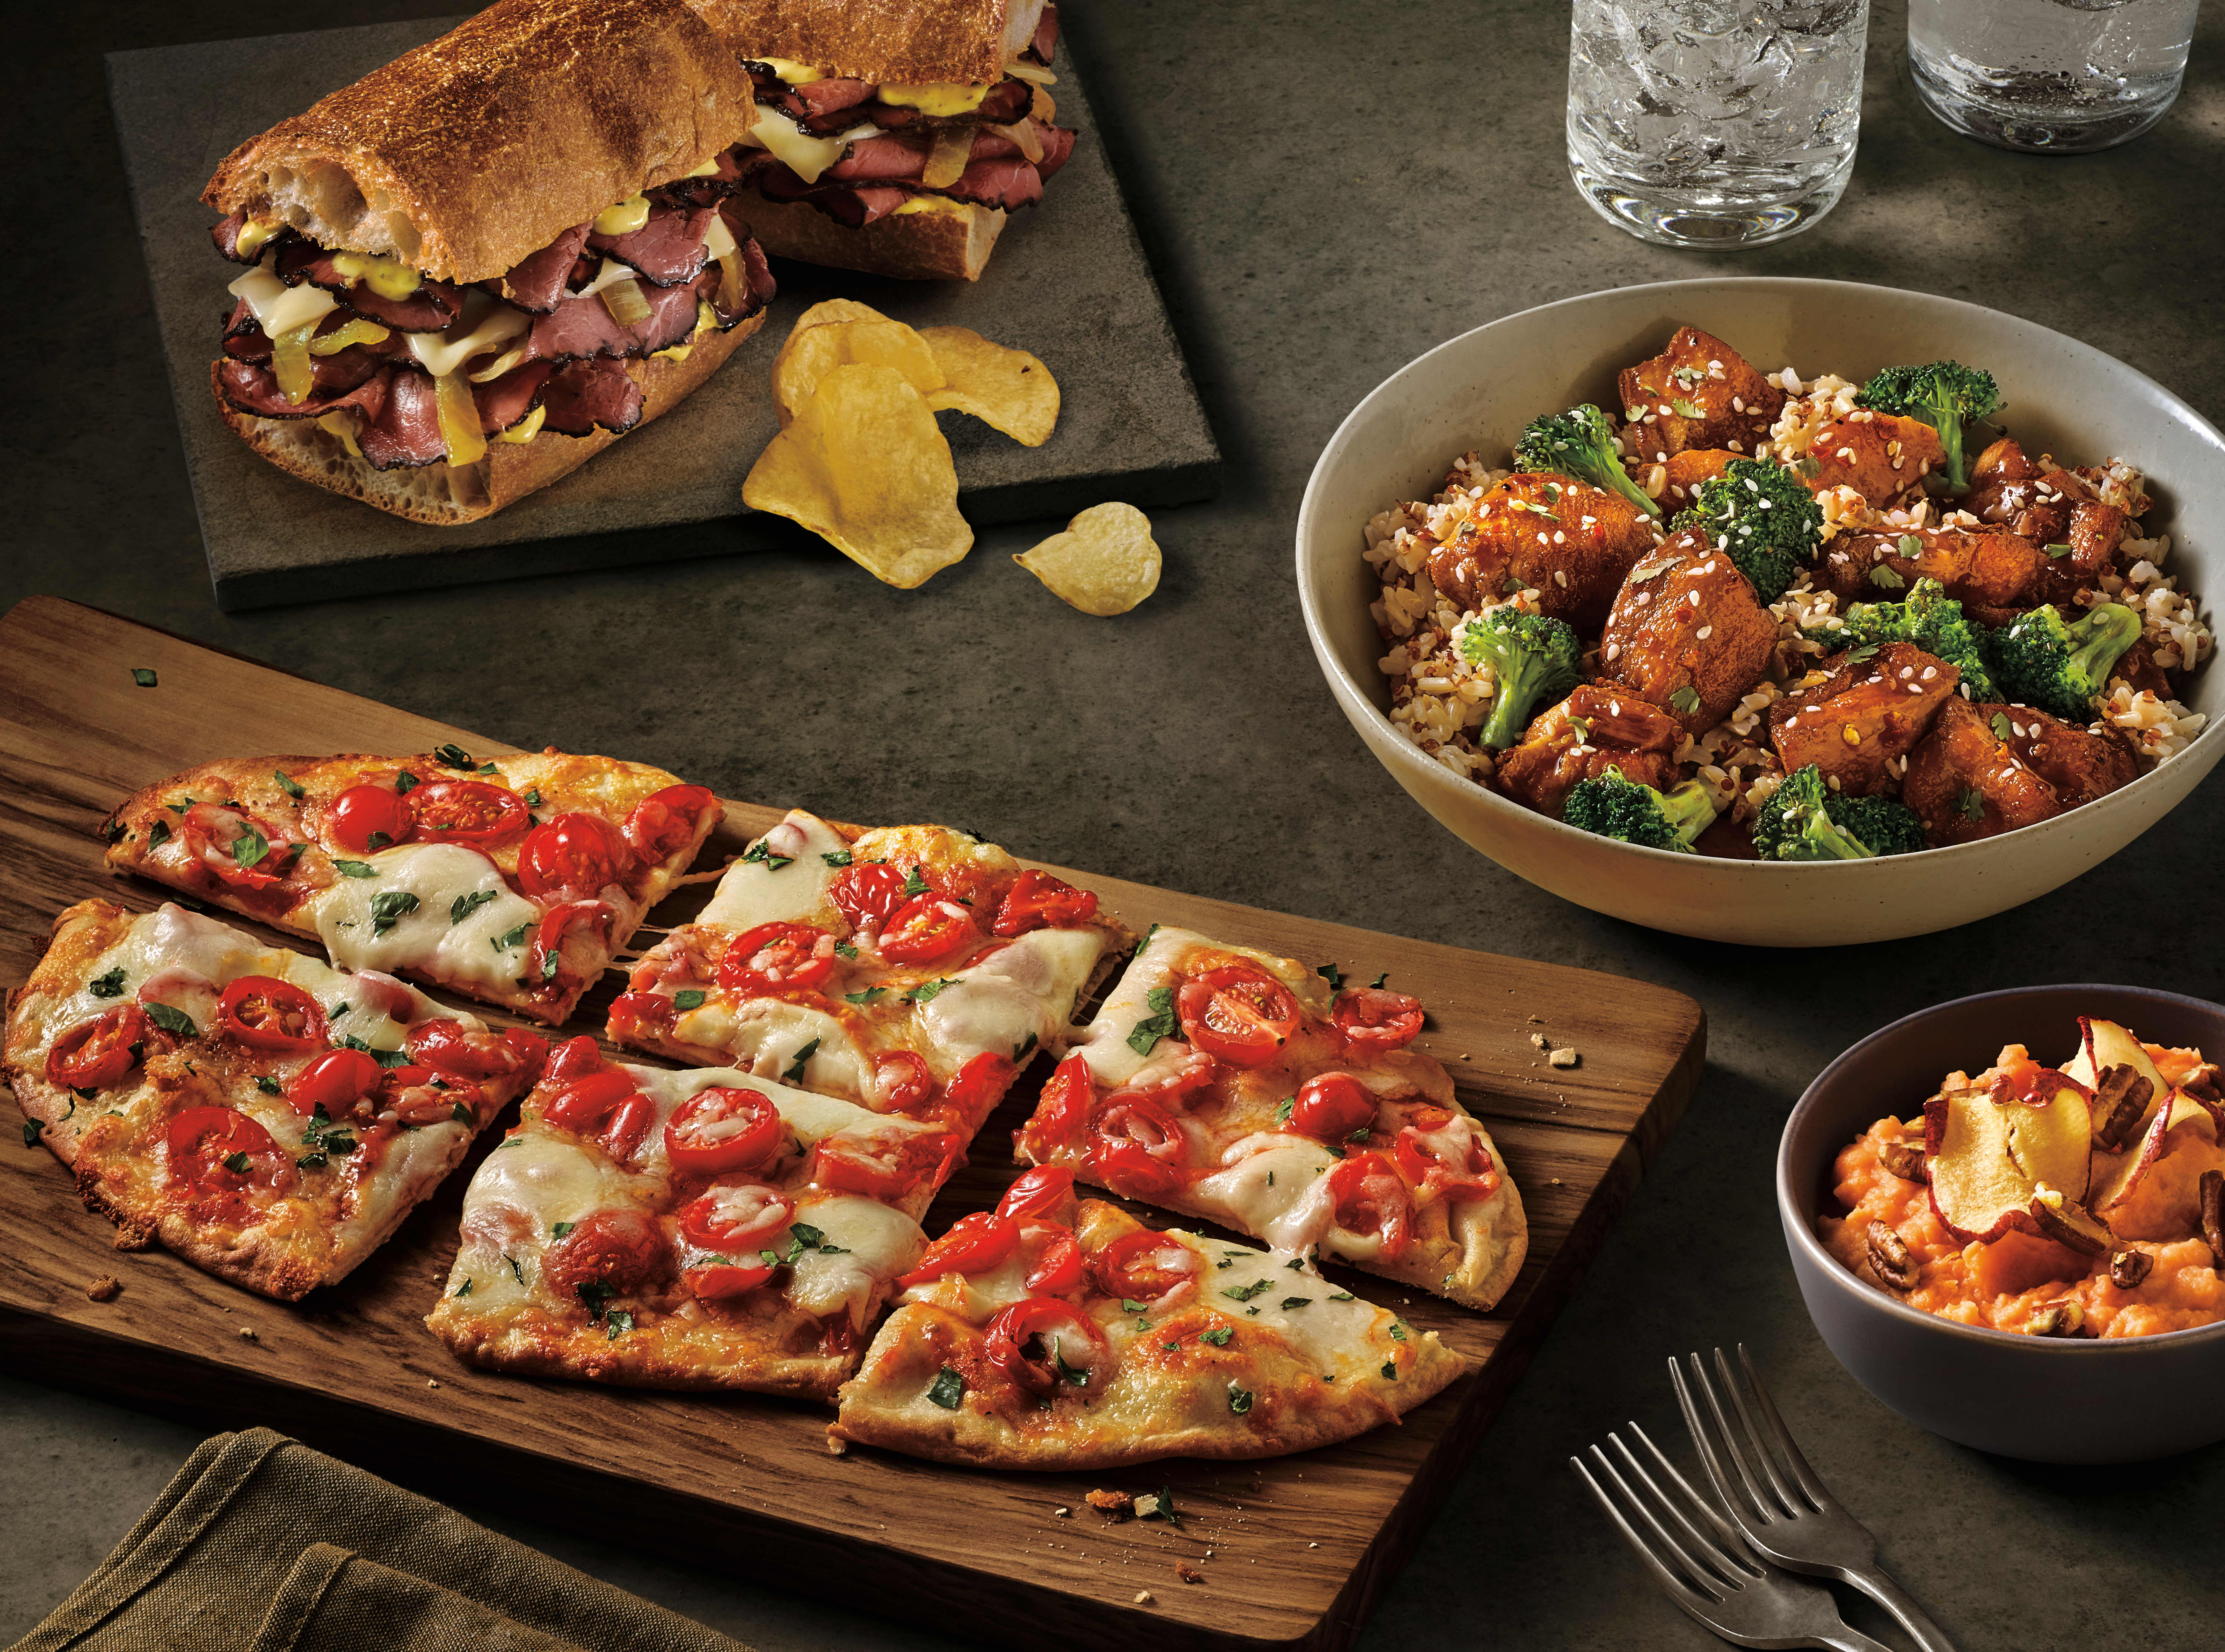 Panera Bread Wants To Be Known For More Than Just Lunch